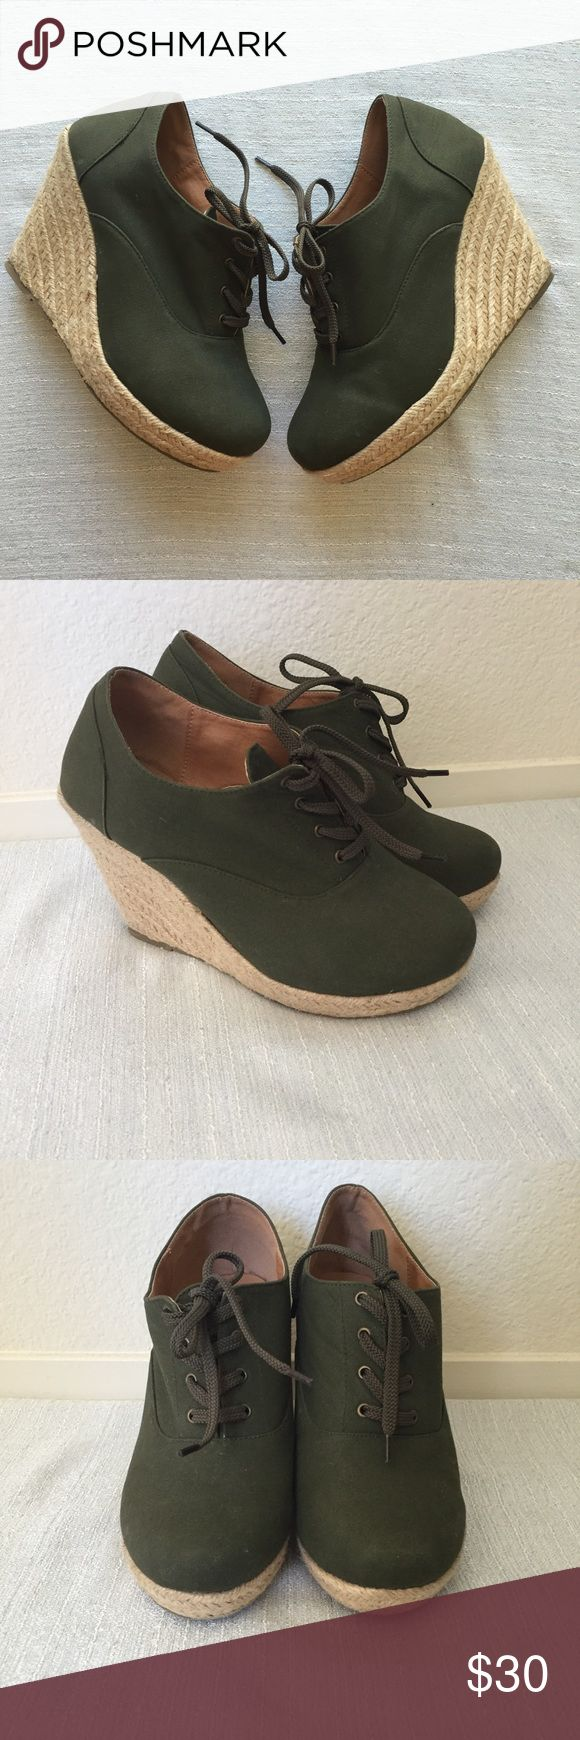 Torrid army green espadrilles tie up wedges 10 Gently used with some wear on the bottom. Torrid army green tie up espadrilles wedges size 10 torrid Shoes Wedges